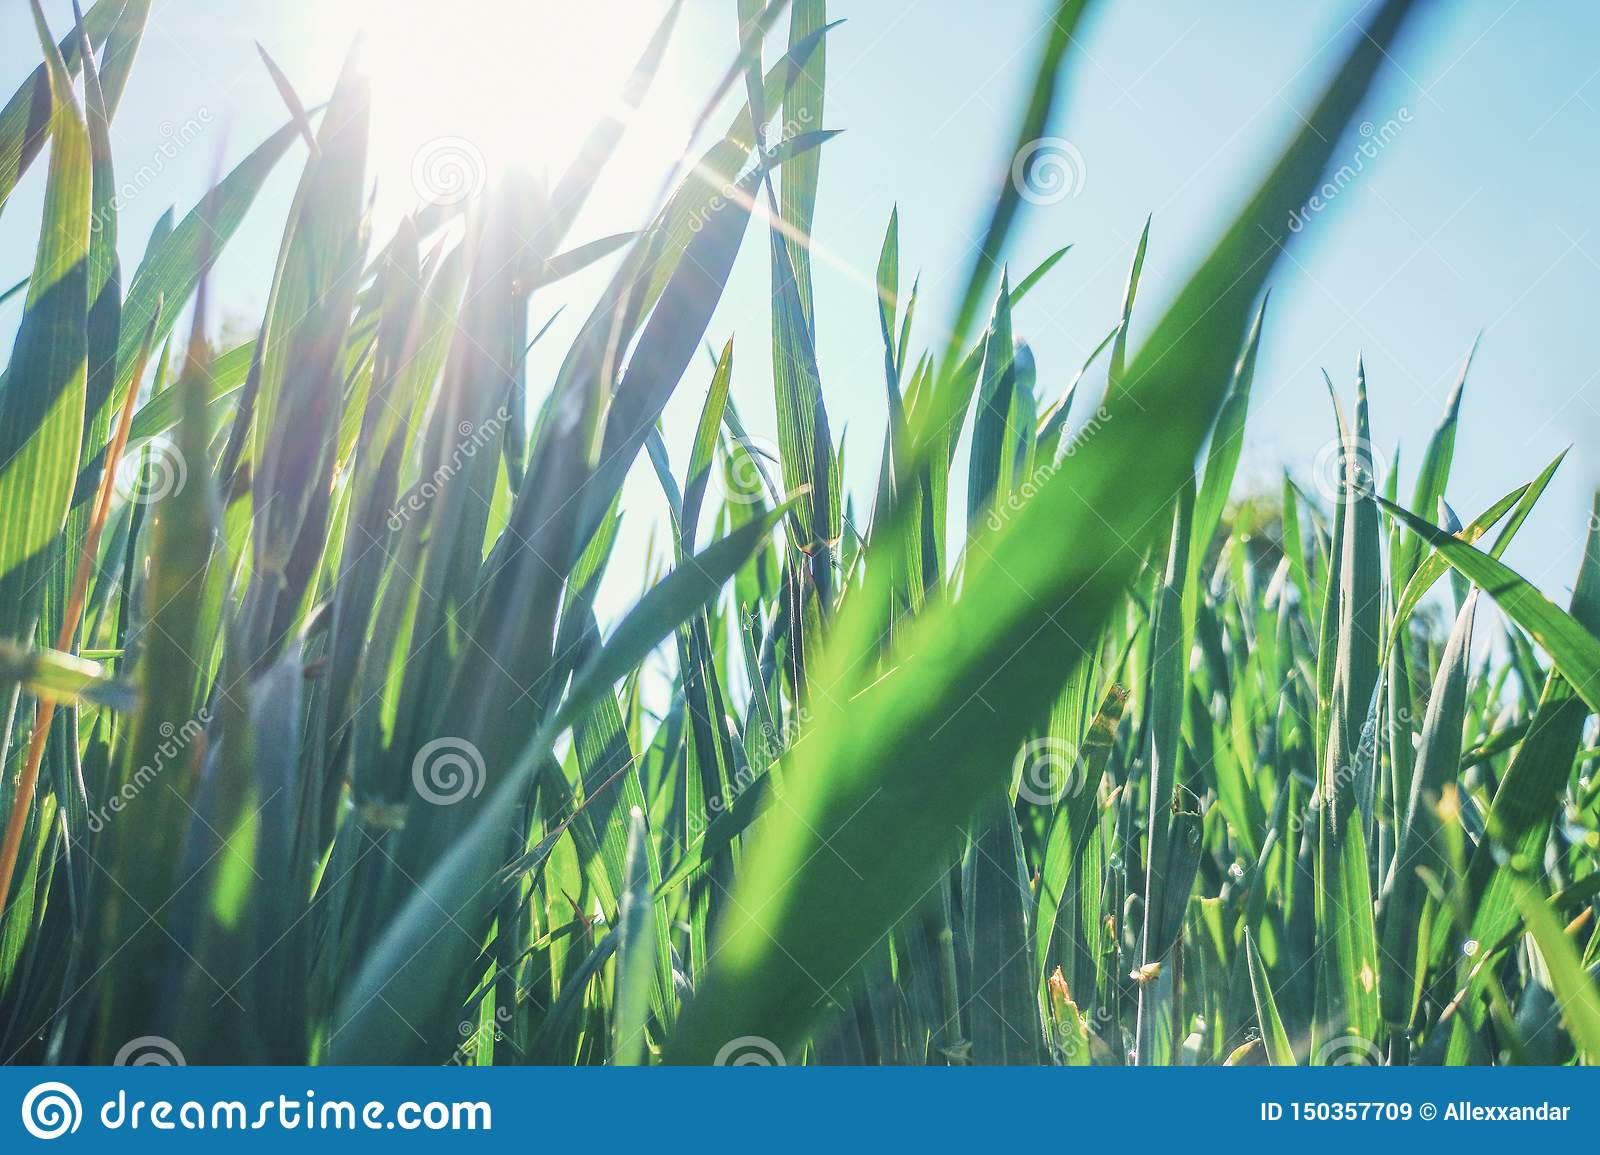 Young Wheat Seedlings Growing in a Field Close up